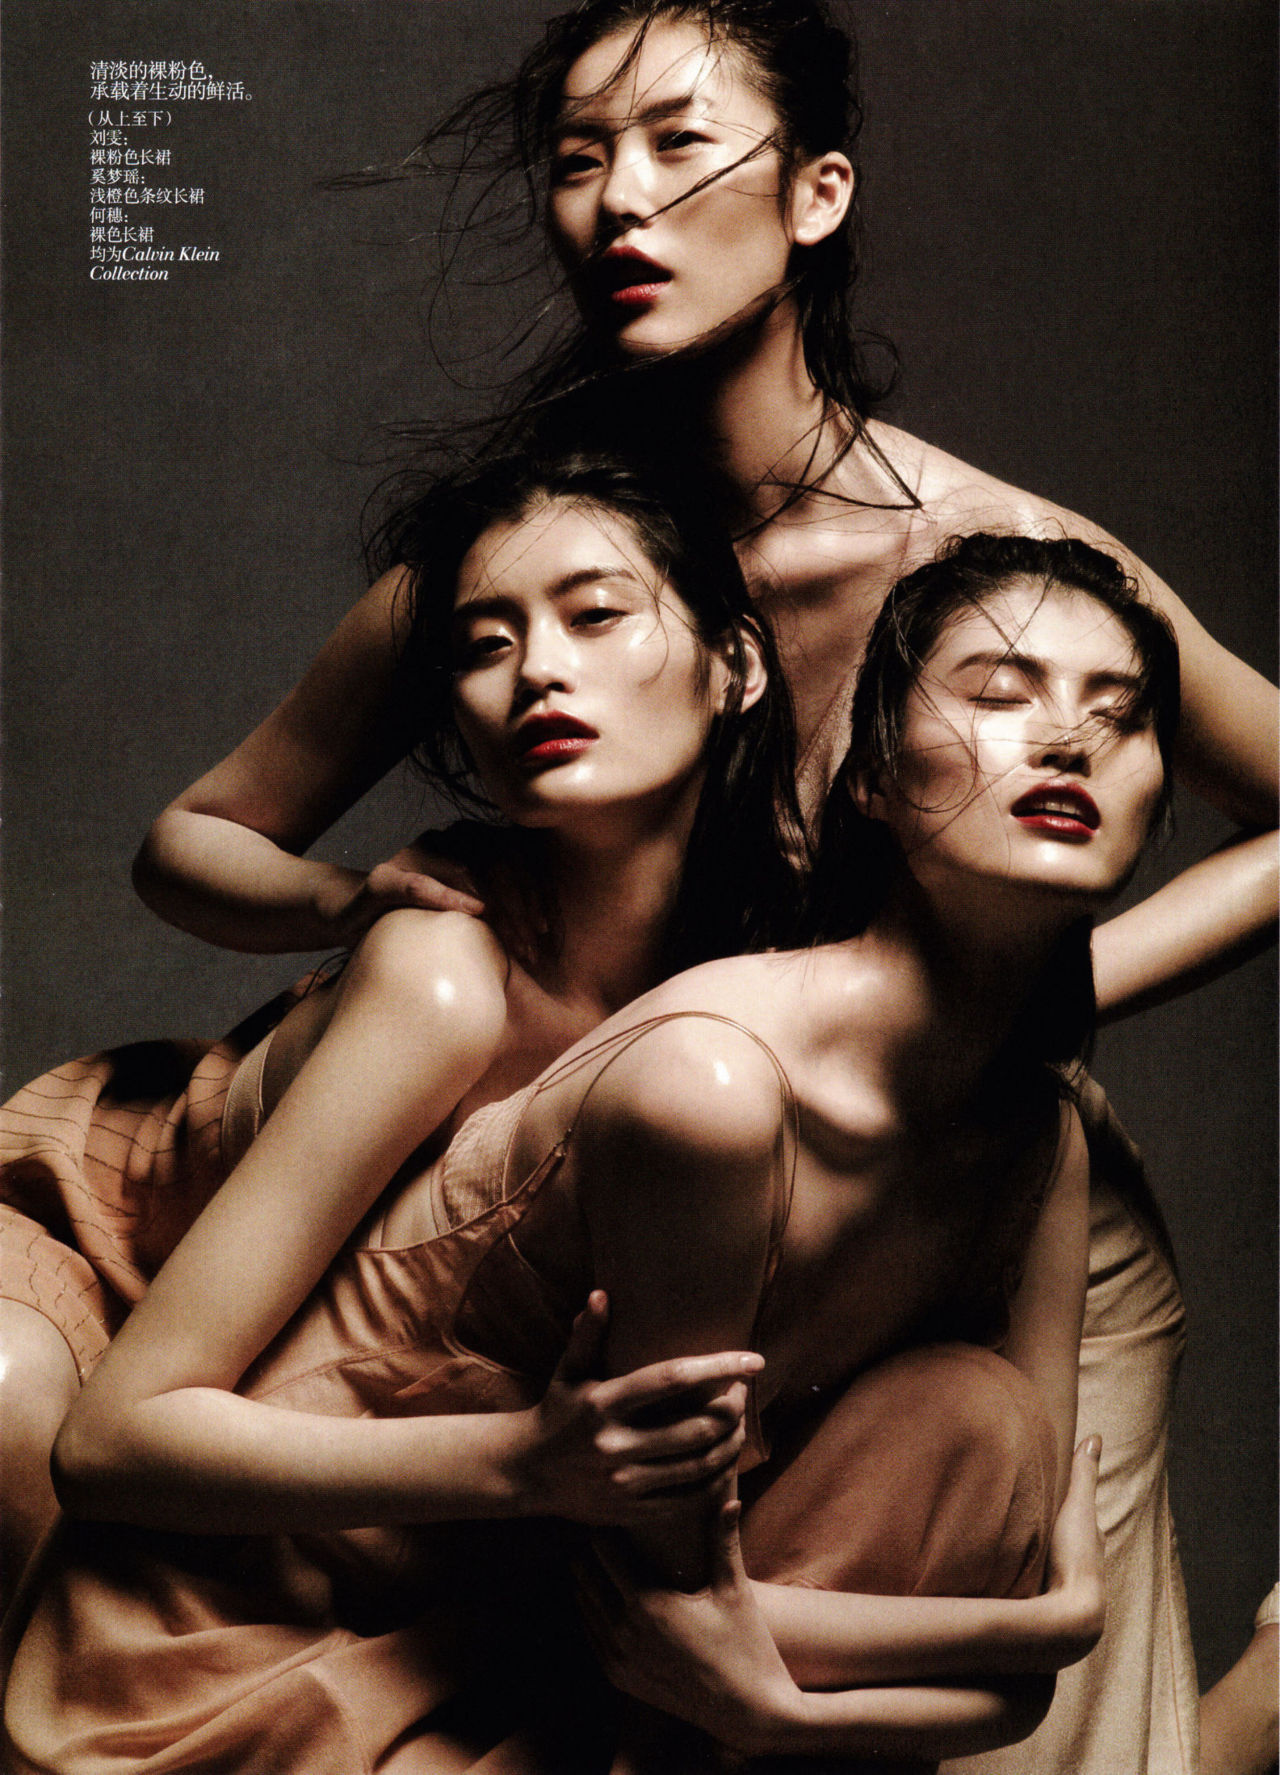 Ming Xi, Liu Wen, and Sui He by Daniel Jackson Vogue China May 2012